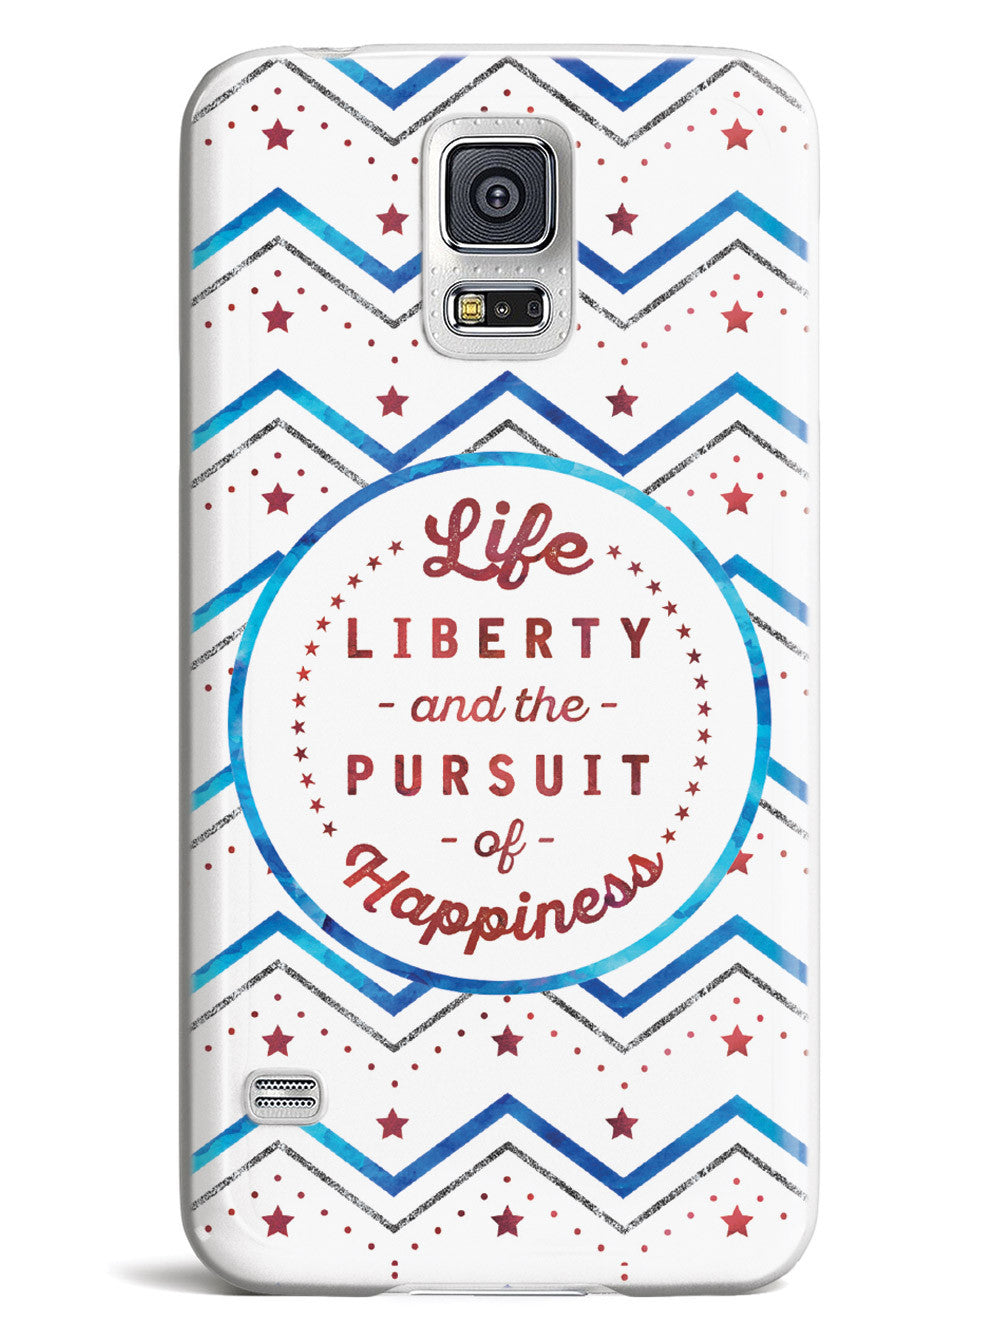 Life, Liberty, and the Pursuit of Happiness - Patriotic Case